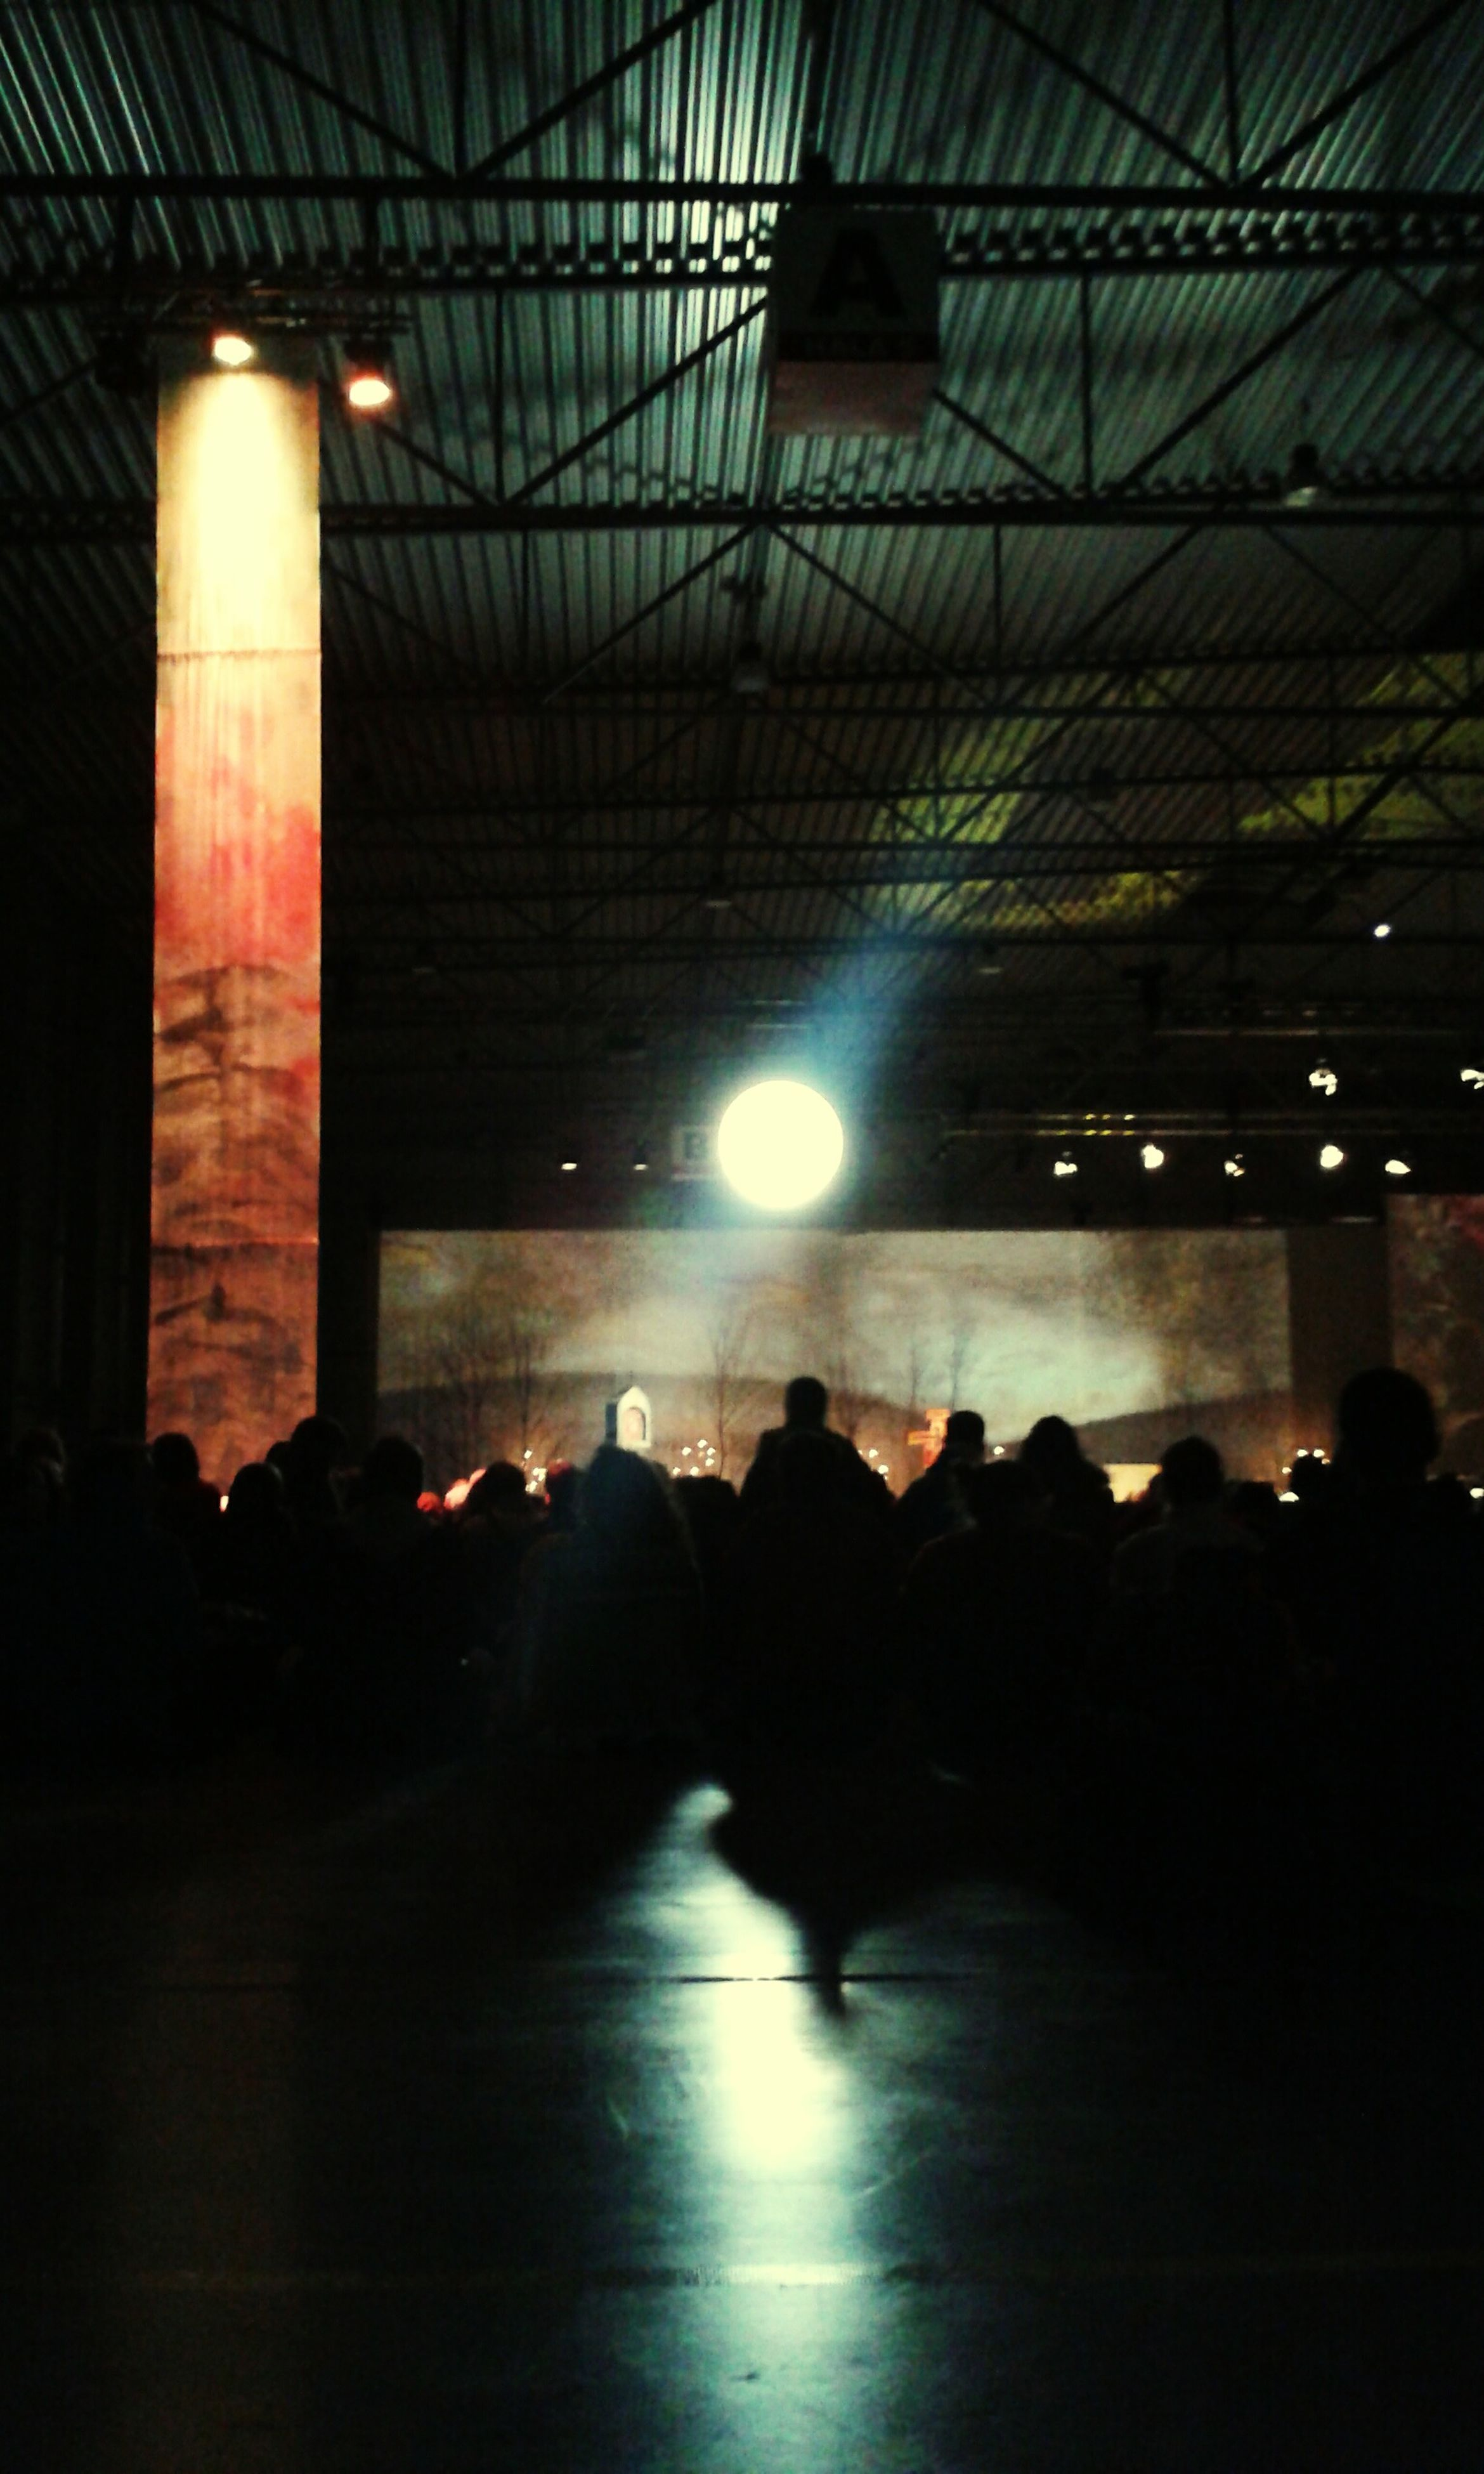 silhouette, illuminated, indoors, large group of people, men, lifestyles, leisure activity, person, night, built structure, lighting equipment, arts culture and entertainment, medium group of people, architecture, group of people, ceiling, walking, unrecognizable person, light - natural phenomenon